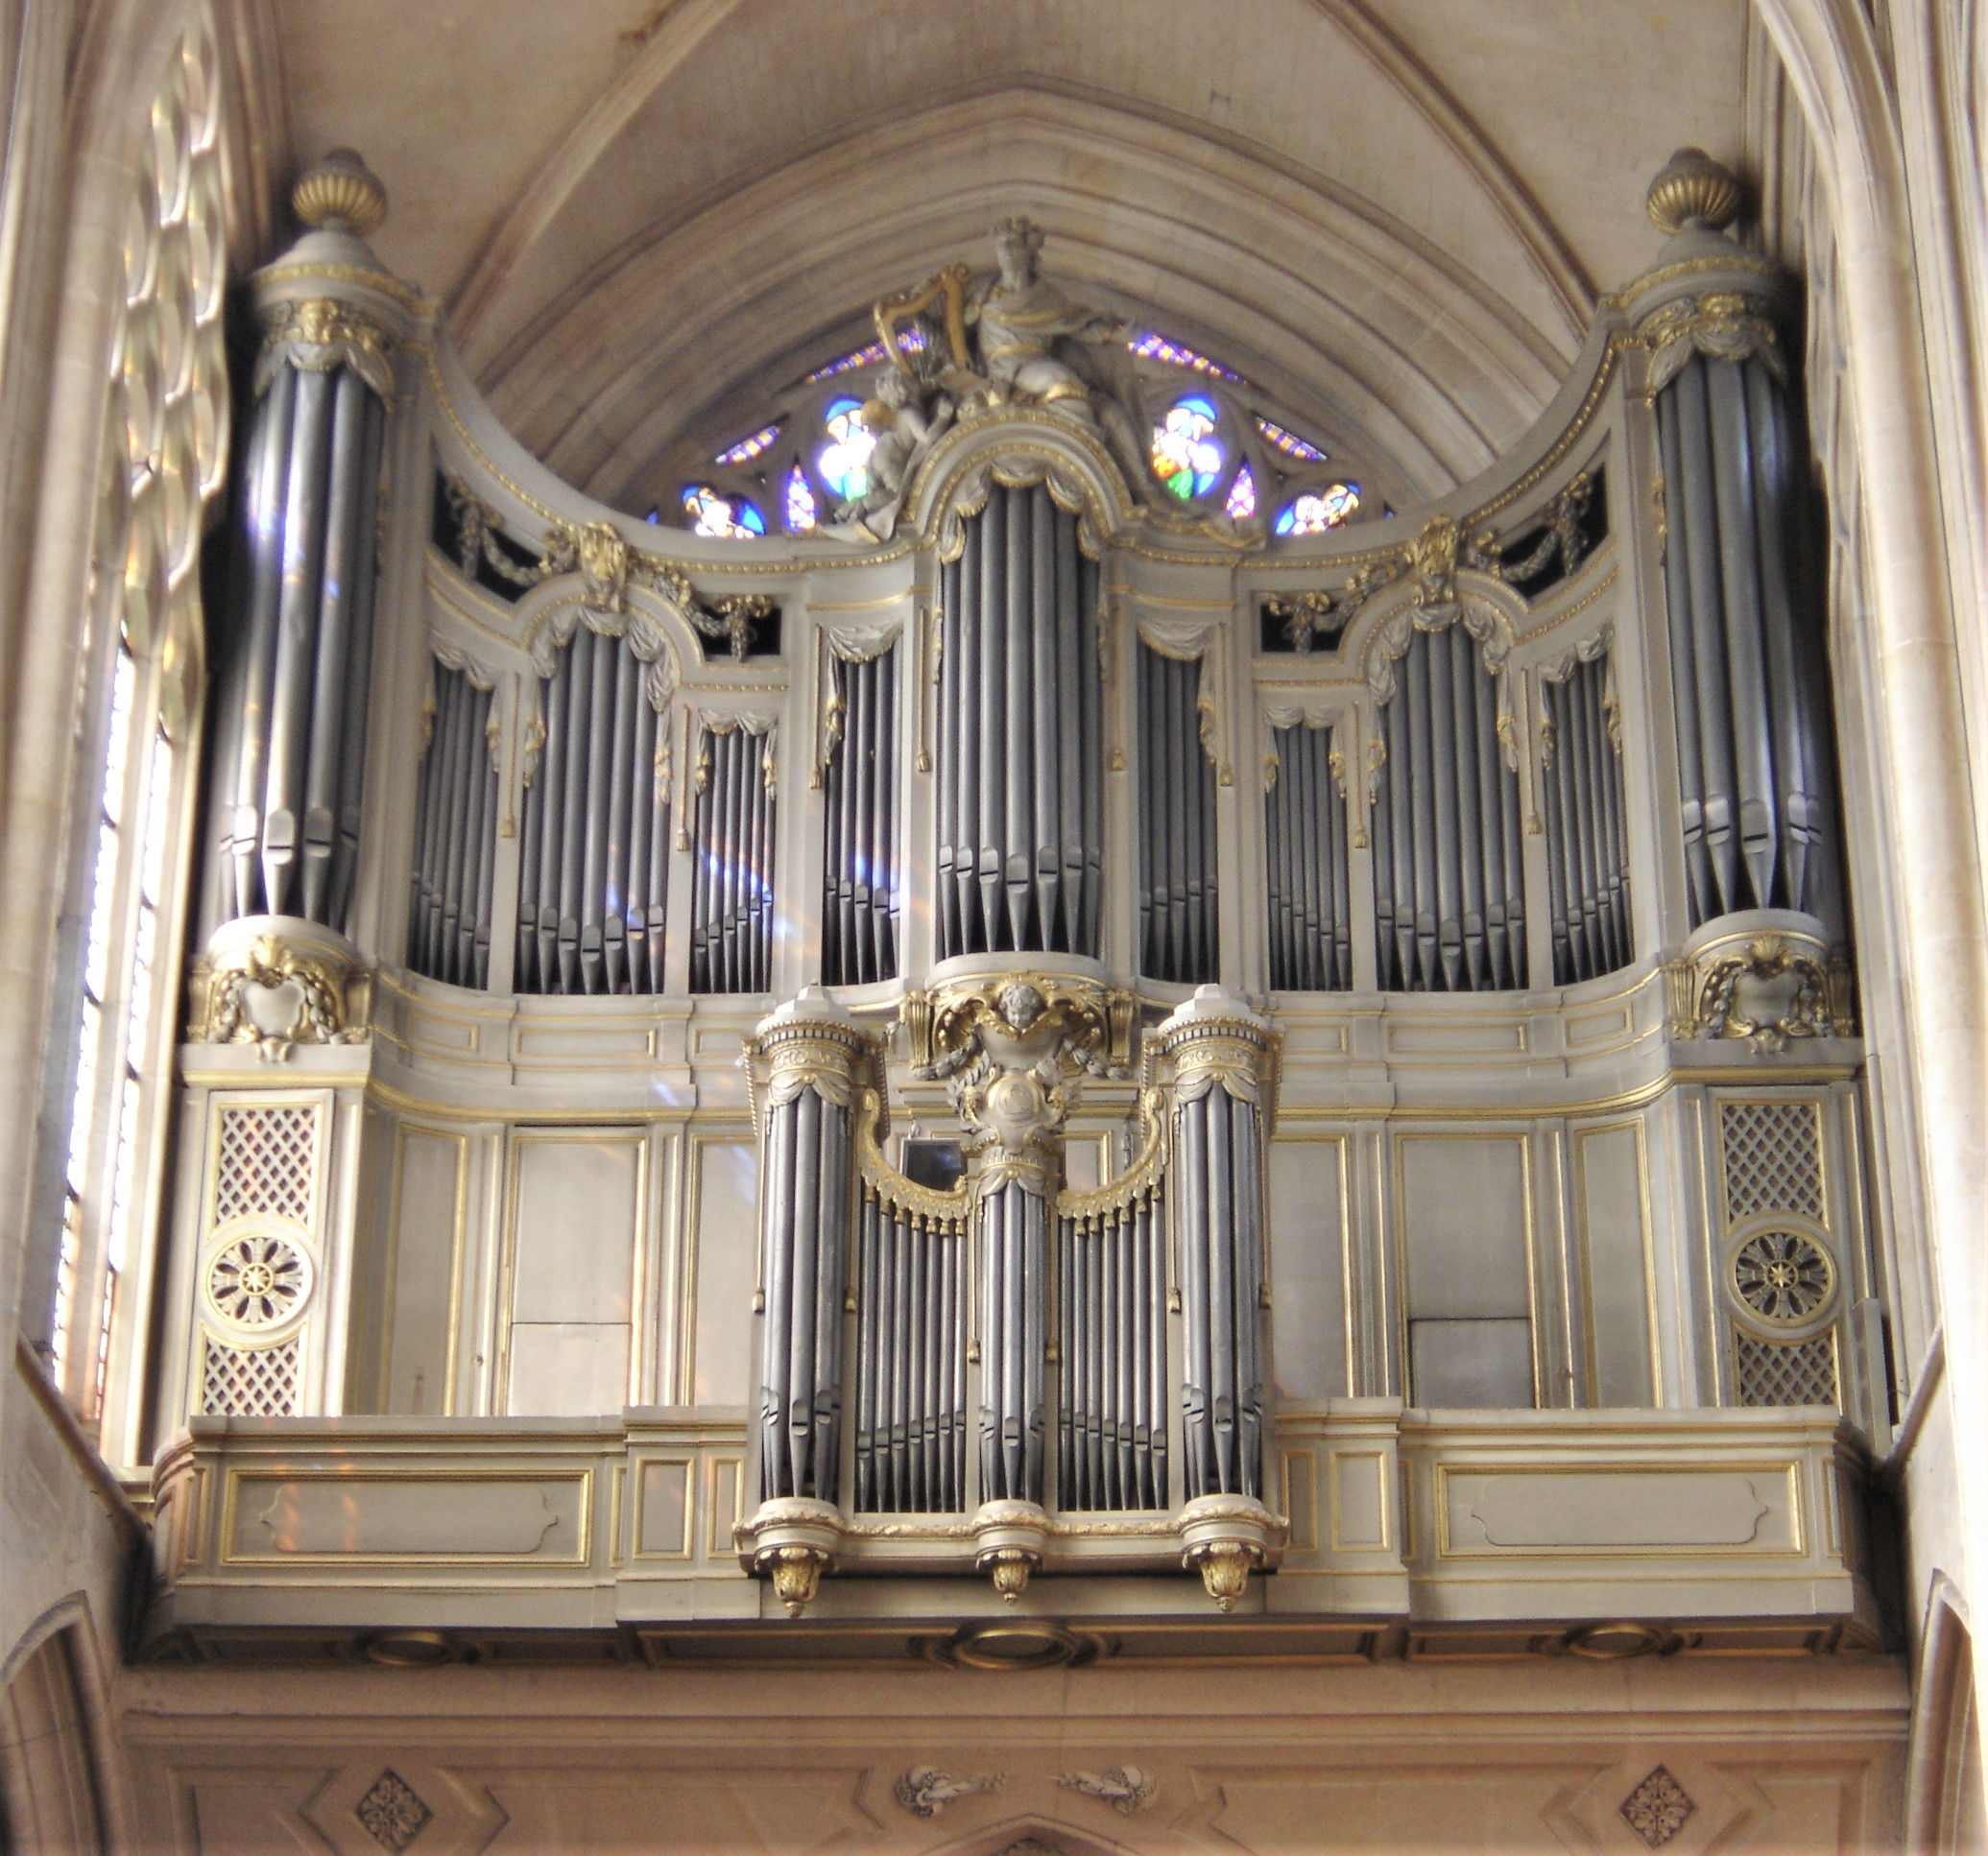 Pipe organ - Wikipedia